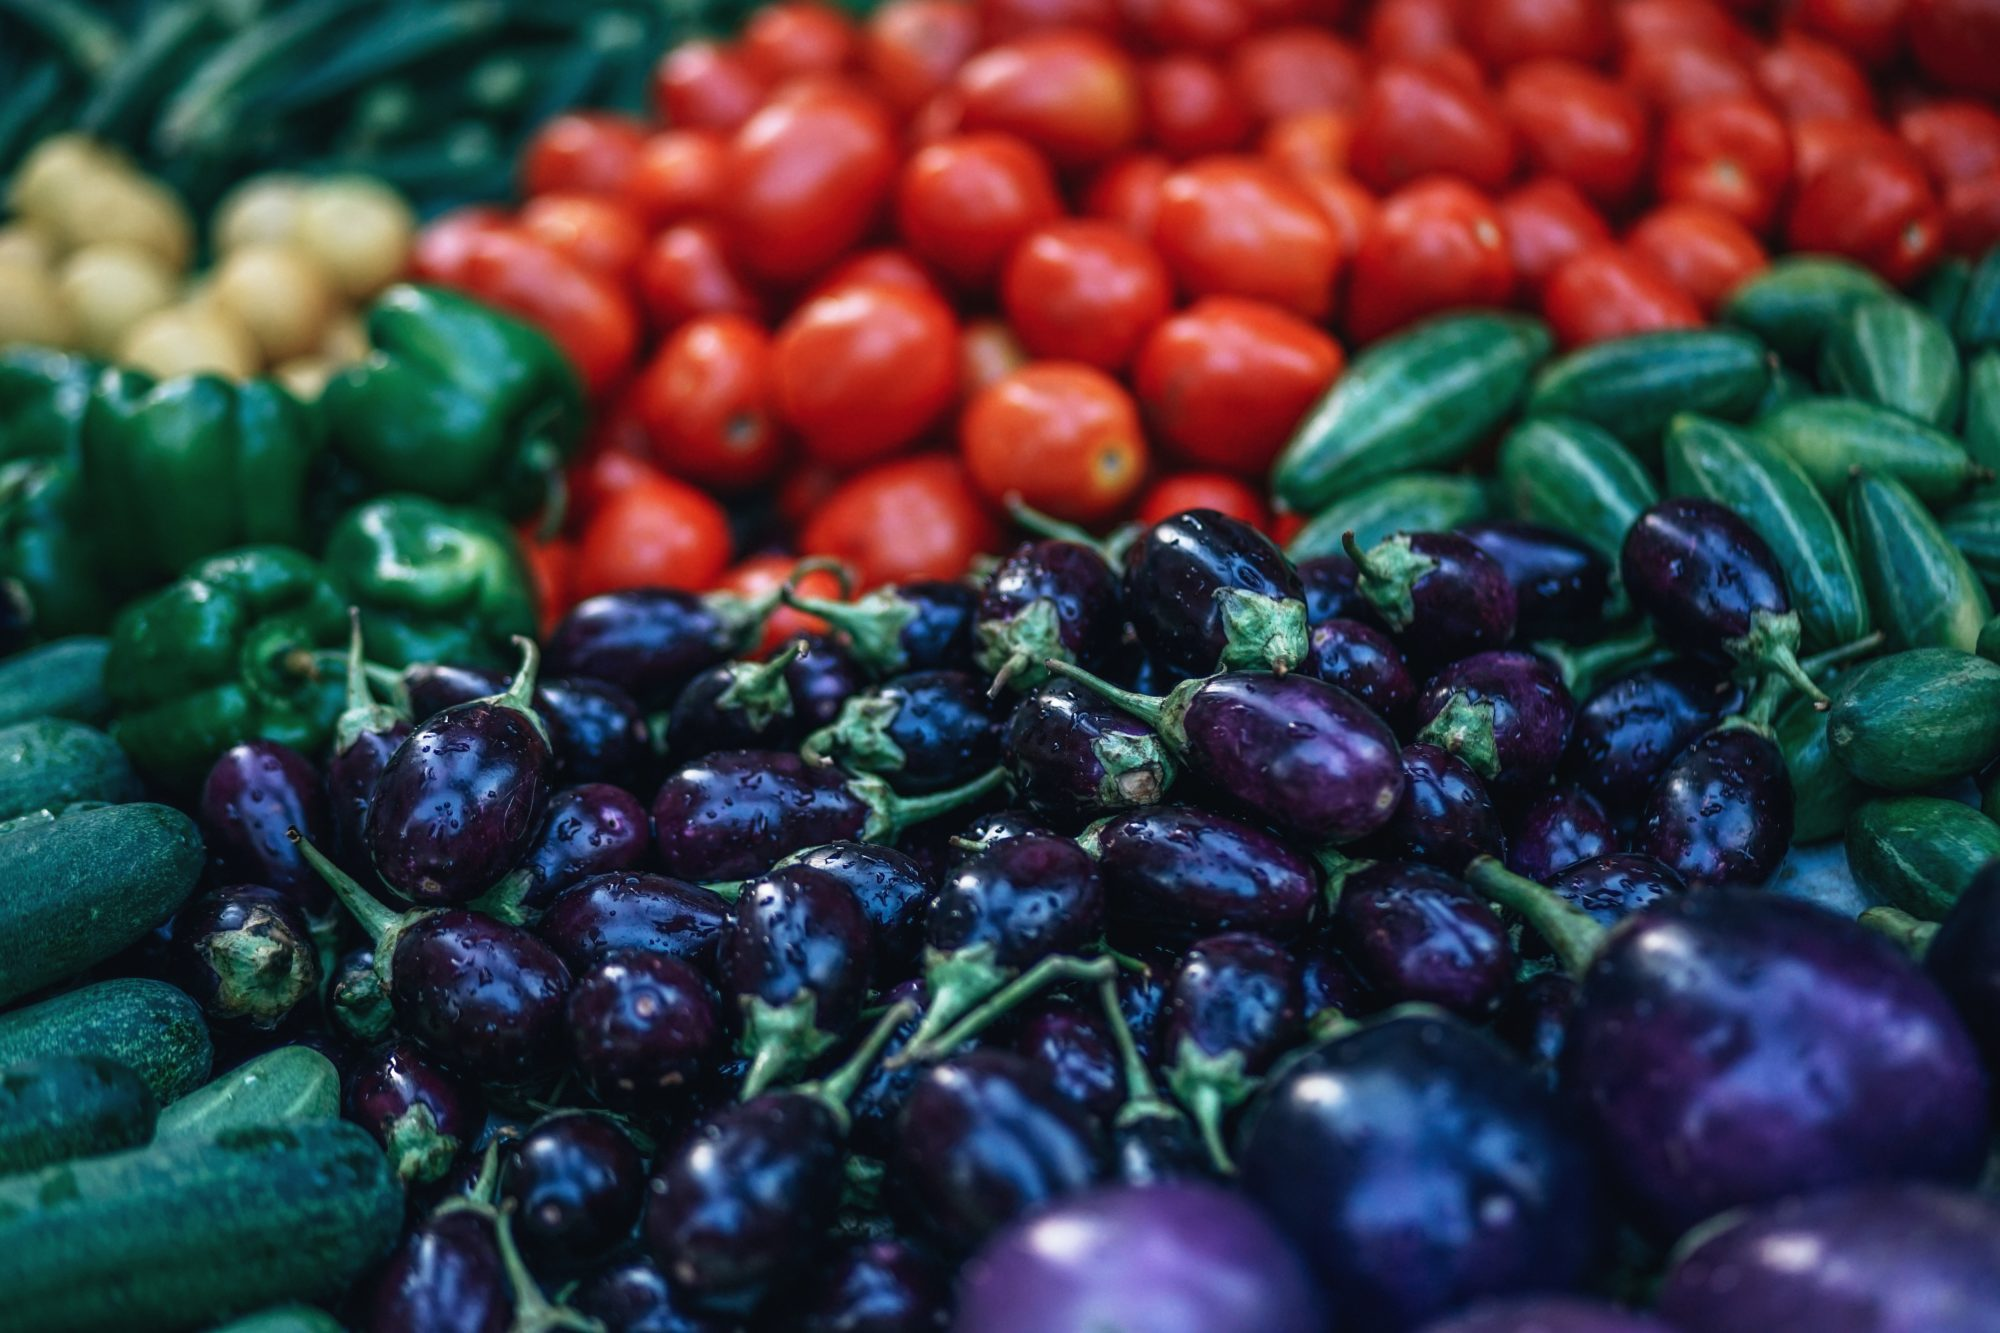 Nightshade Veggies Are Not Out To Harm Your Health